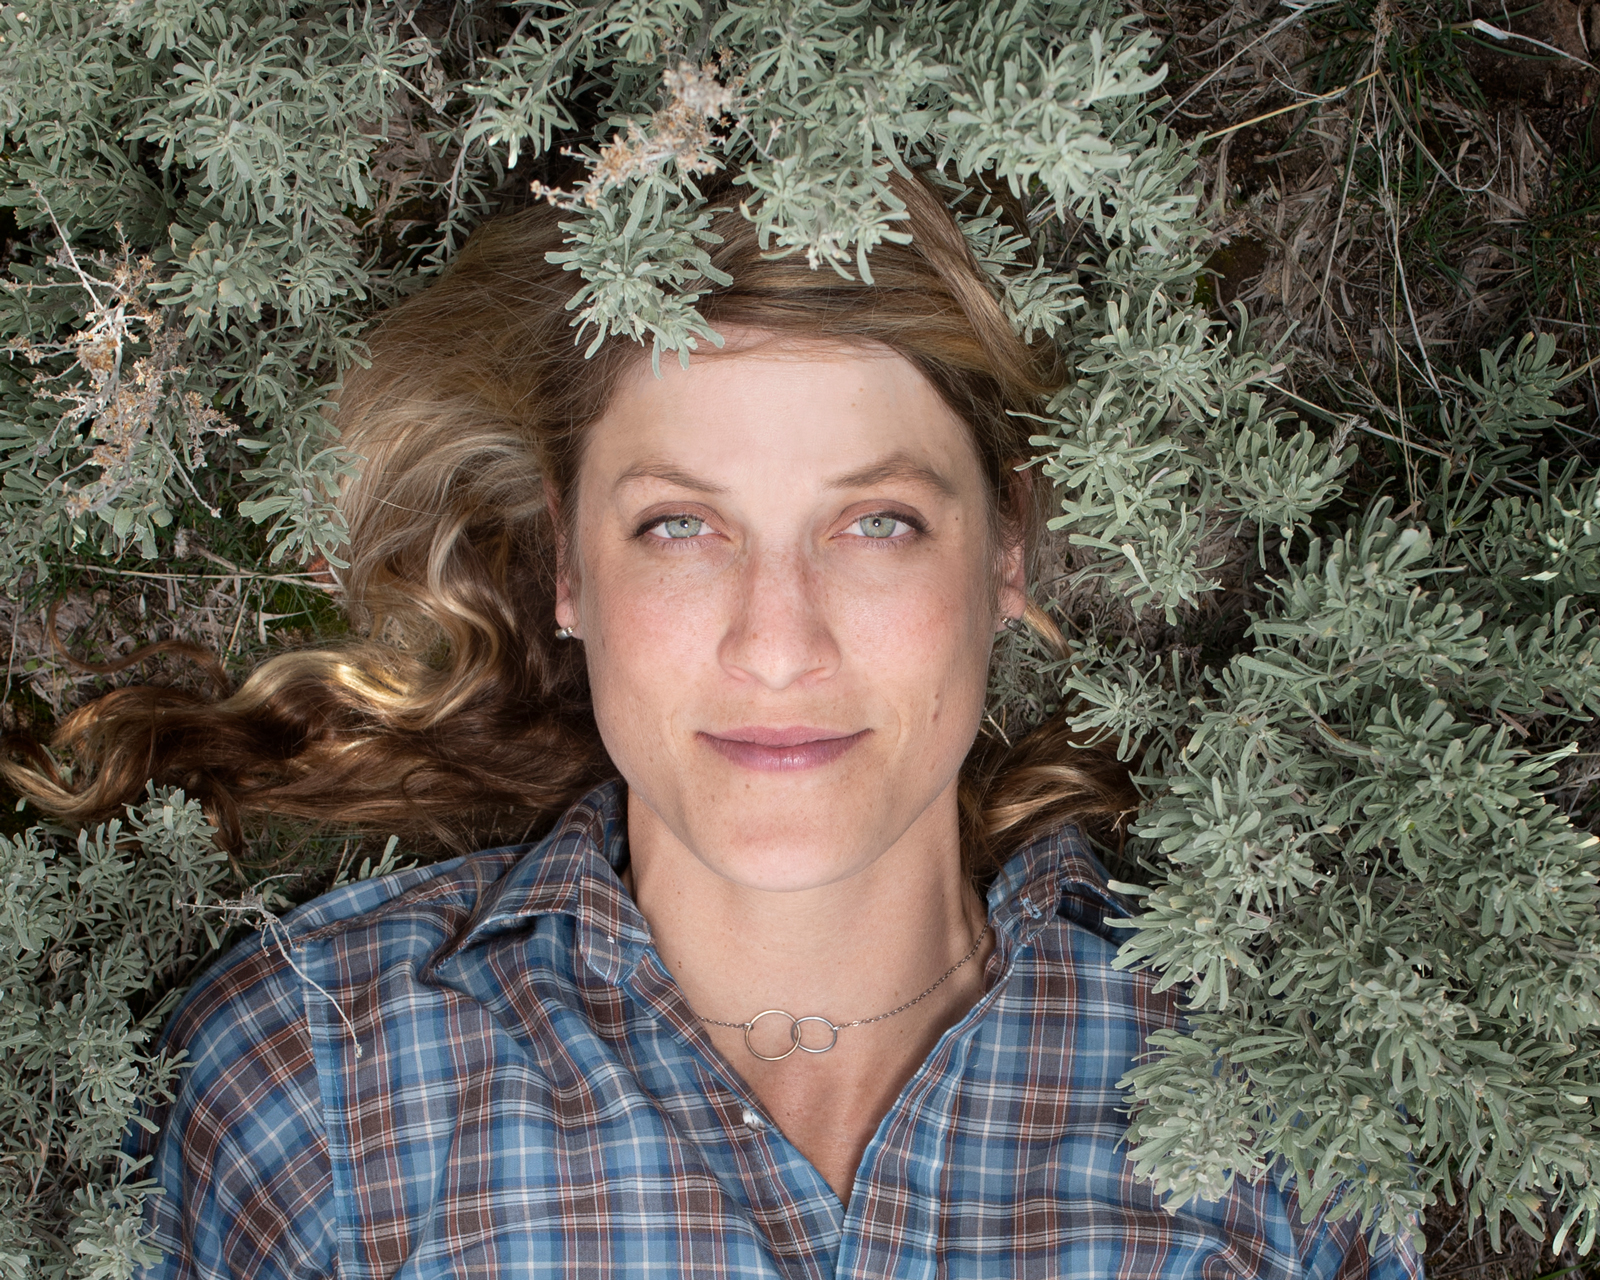 Martha Brabec portrait surrounded by sagebrush